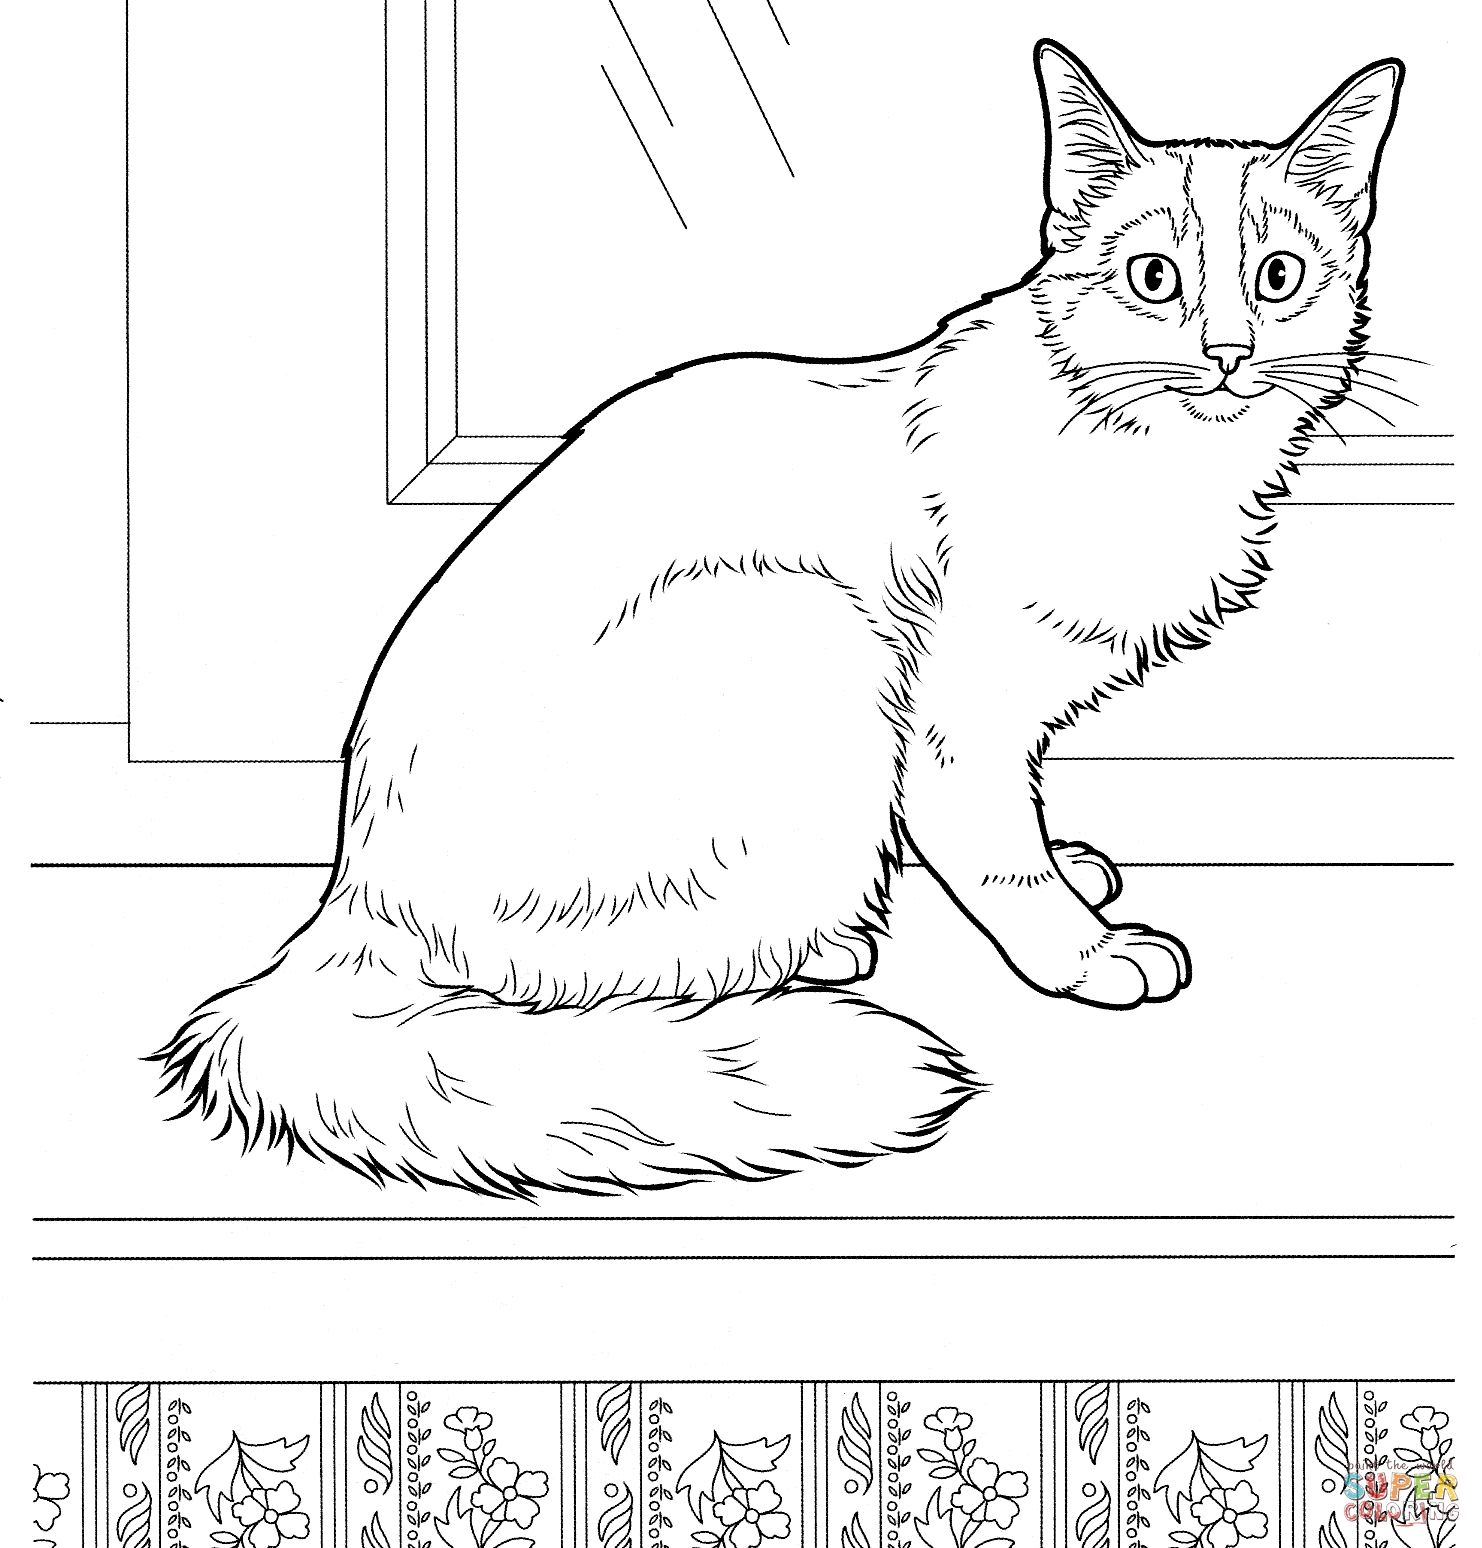 Calico Cat Coloring Pages Download Cat Coloring Page Cat Coloring Cat Coloring Pages Free Printable